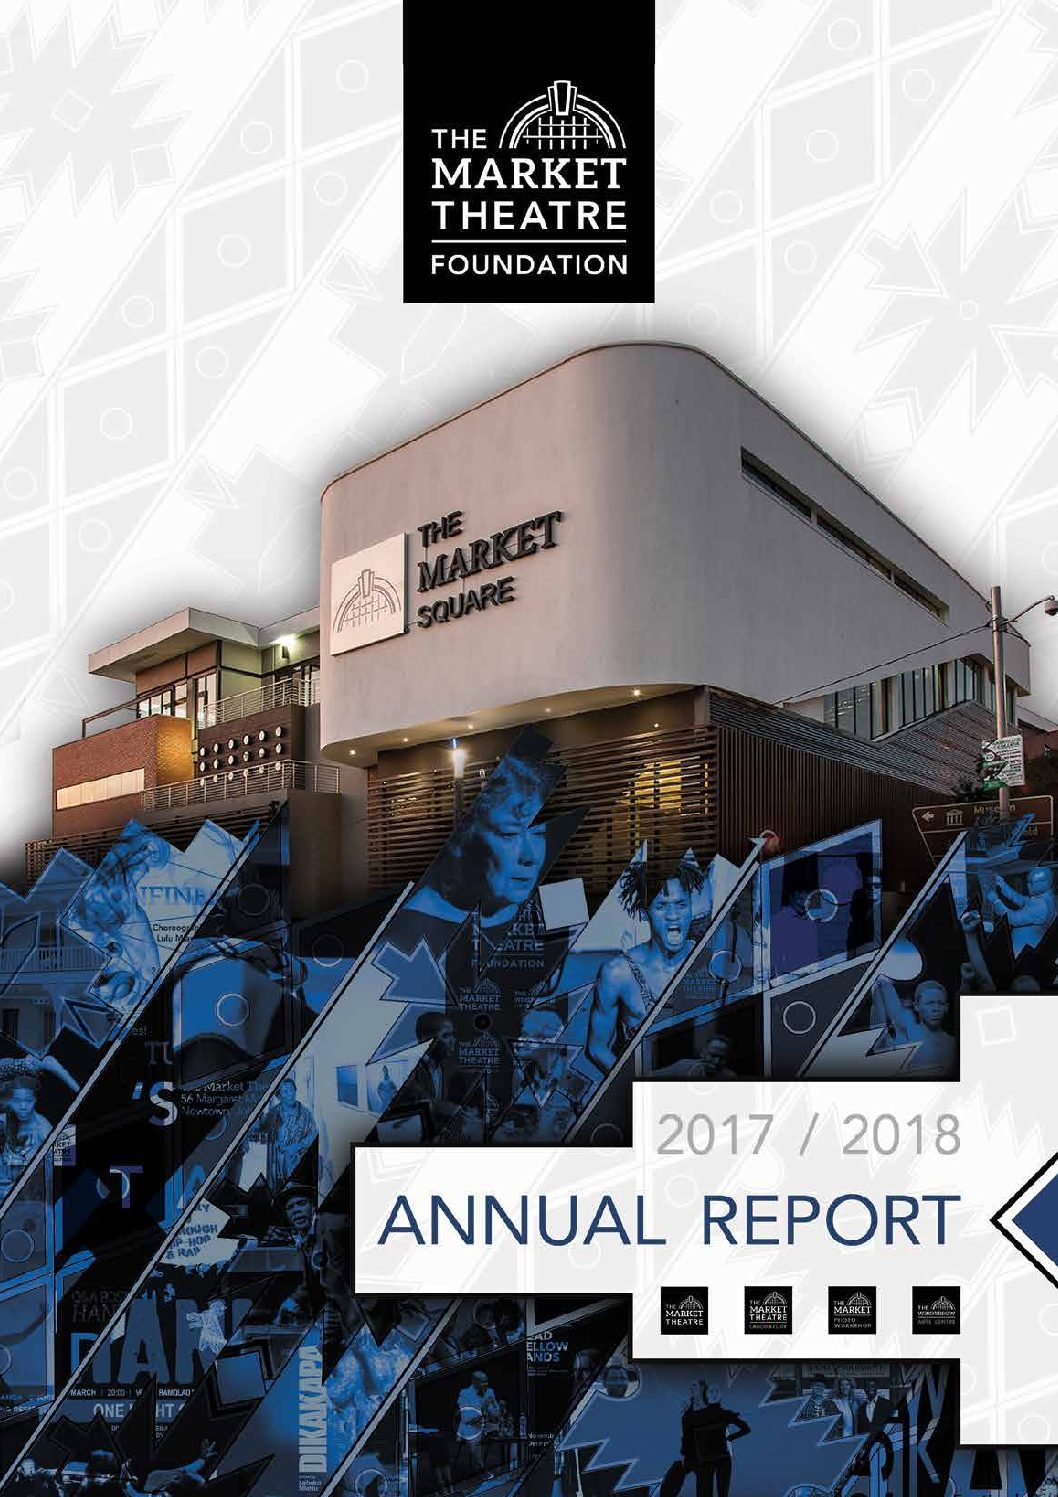 market-theatre-foundation-annual-report-2018-1